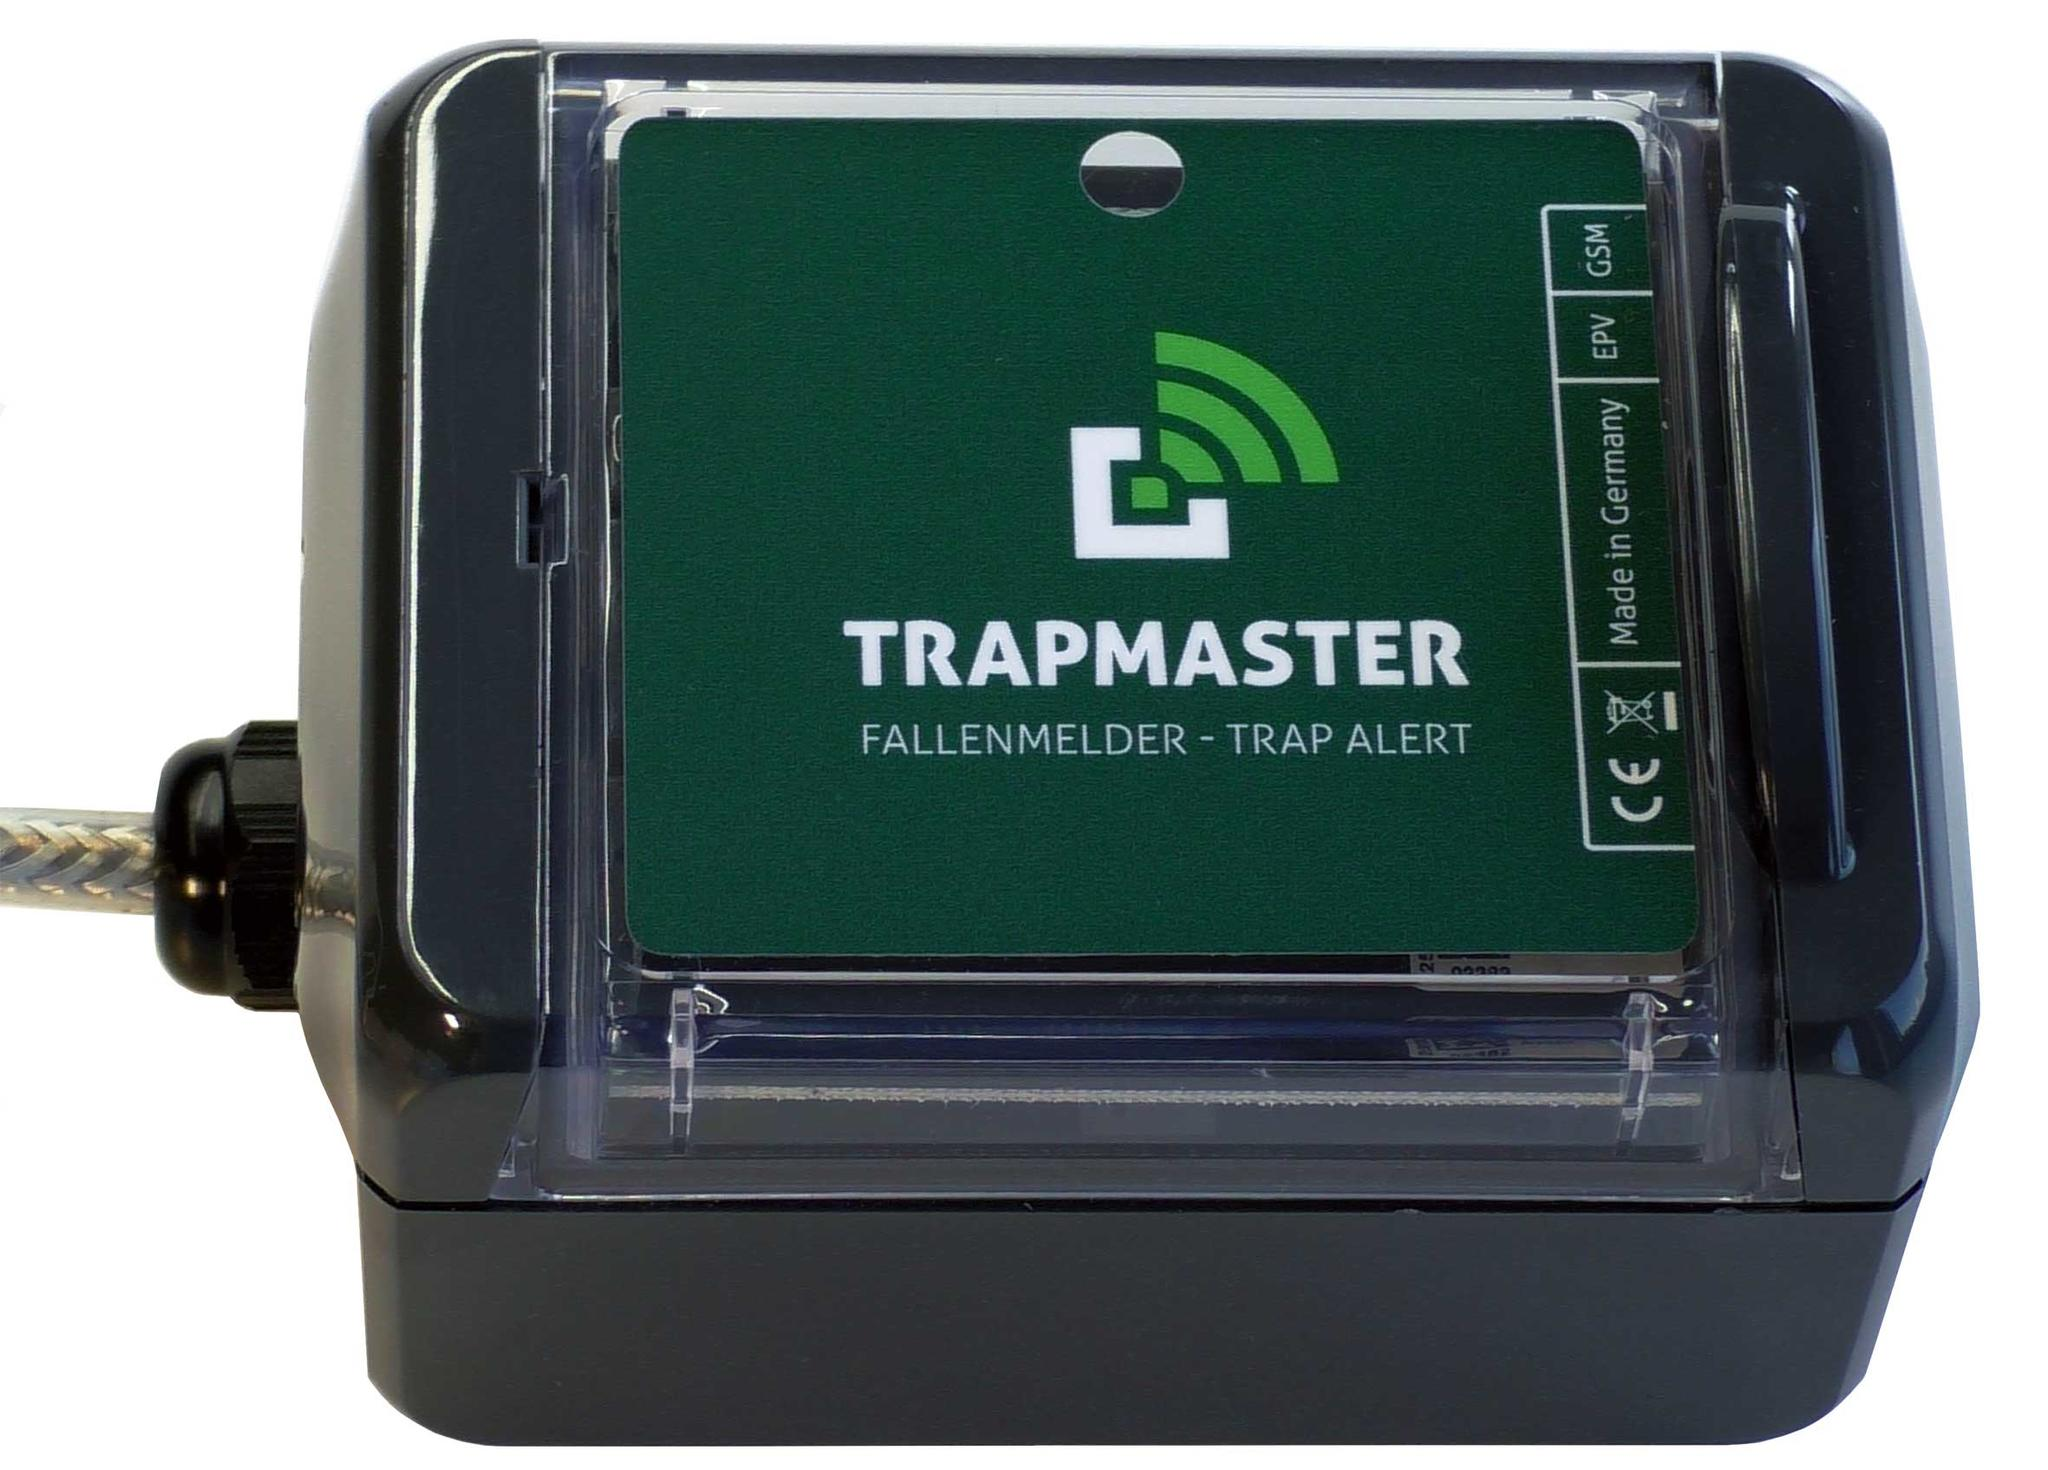 TRAPMASTER trap alert system